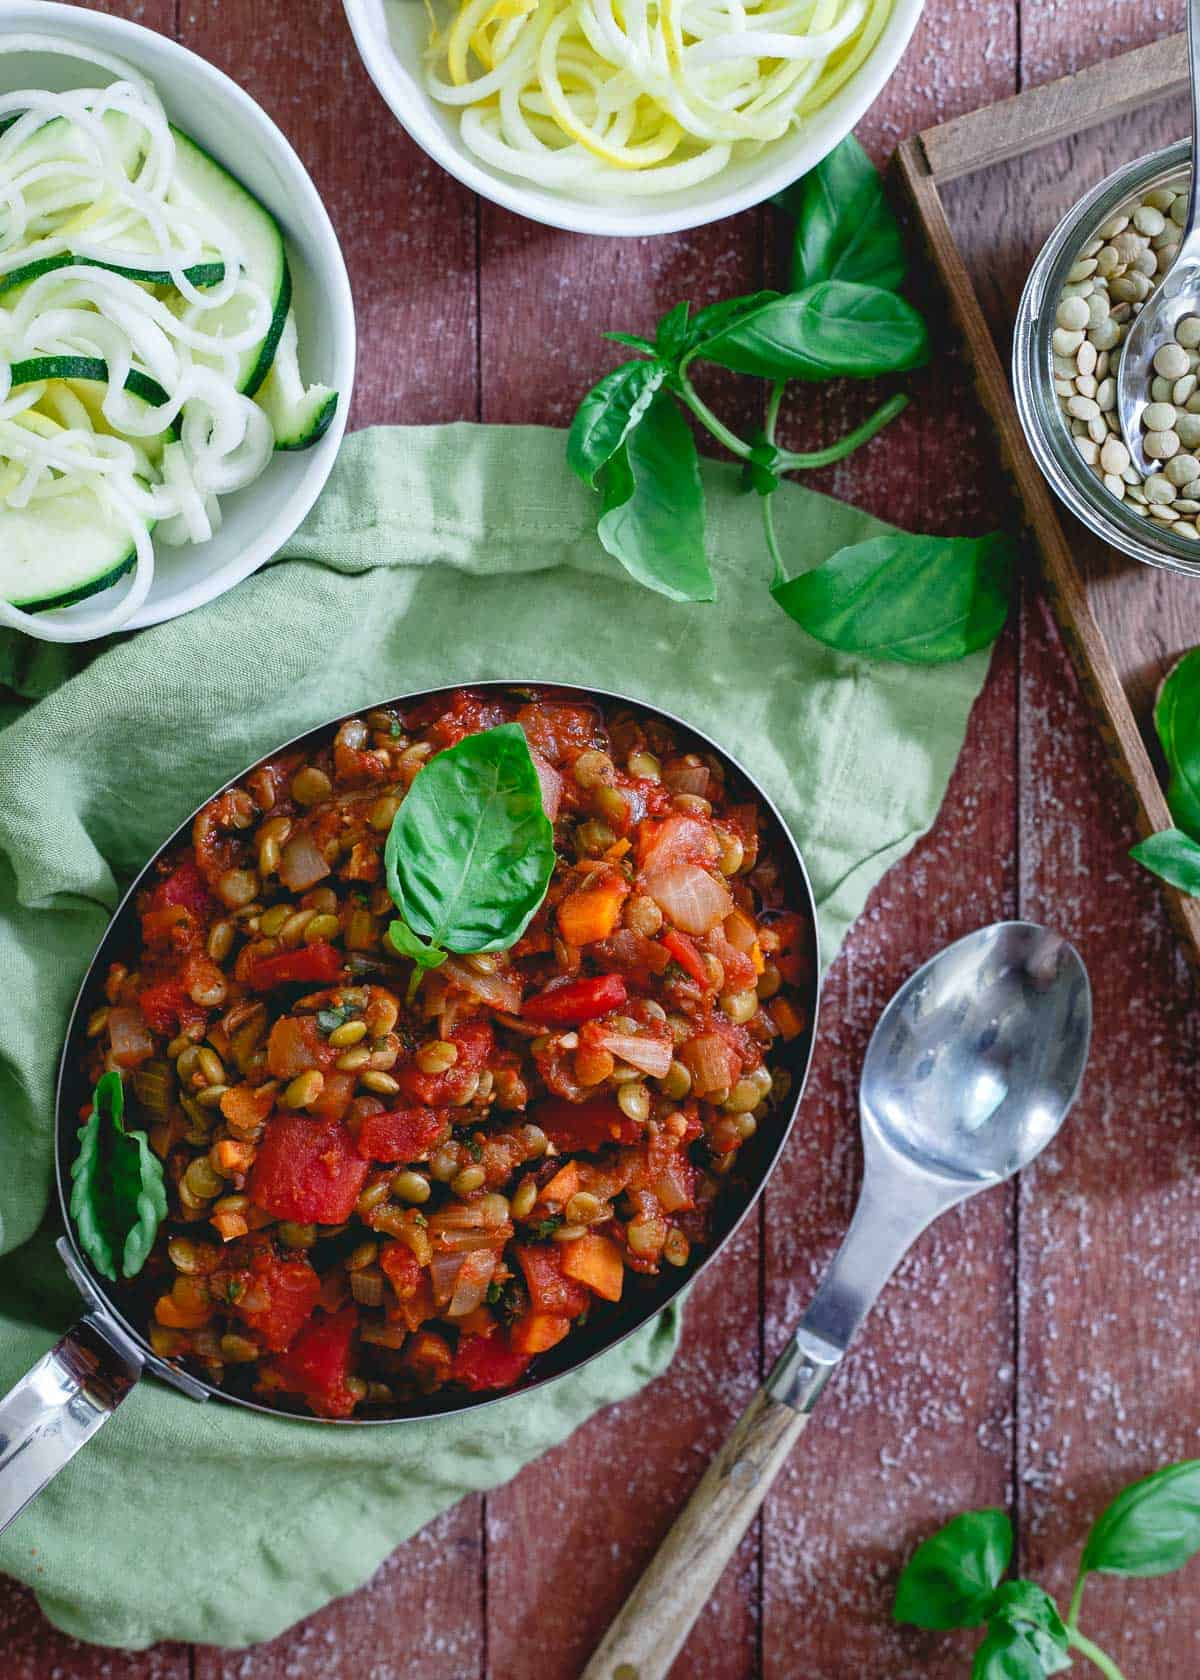 Lentil bolognese is a thick and hearty vegetarian pasta sauce option. Also delicious over summer squash noodles, polenta or your favorite grain.